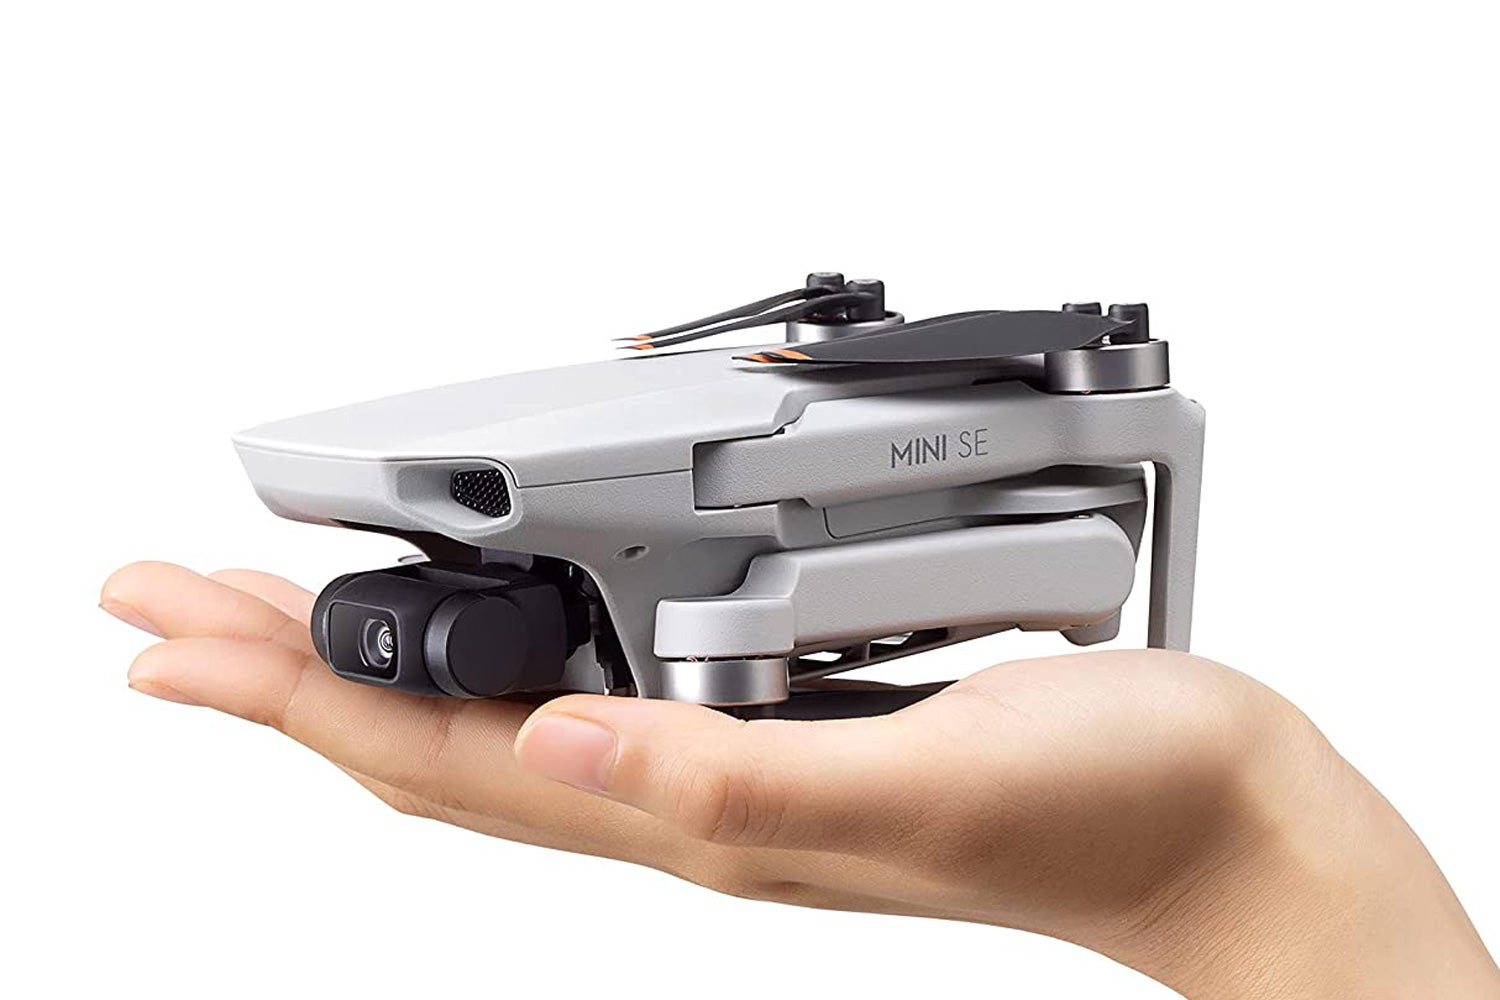 DJI's tiny, affordable drone is officially coming to the US